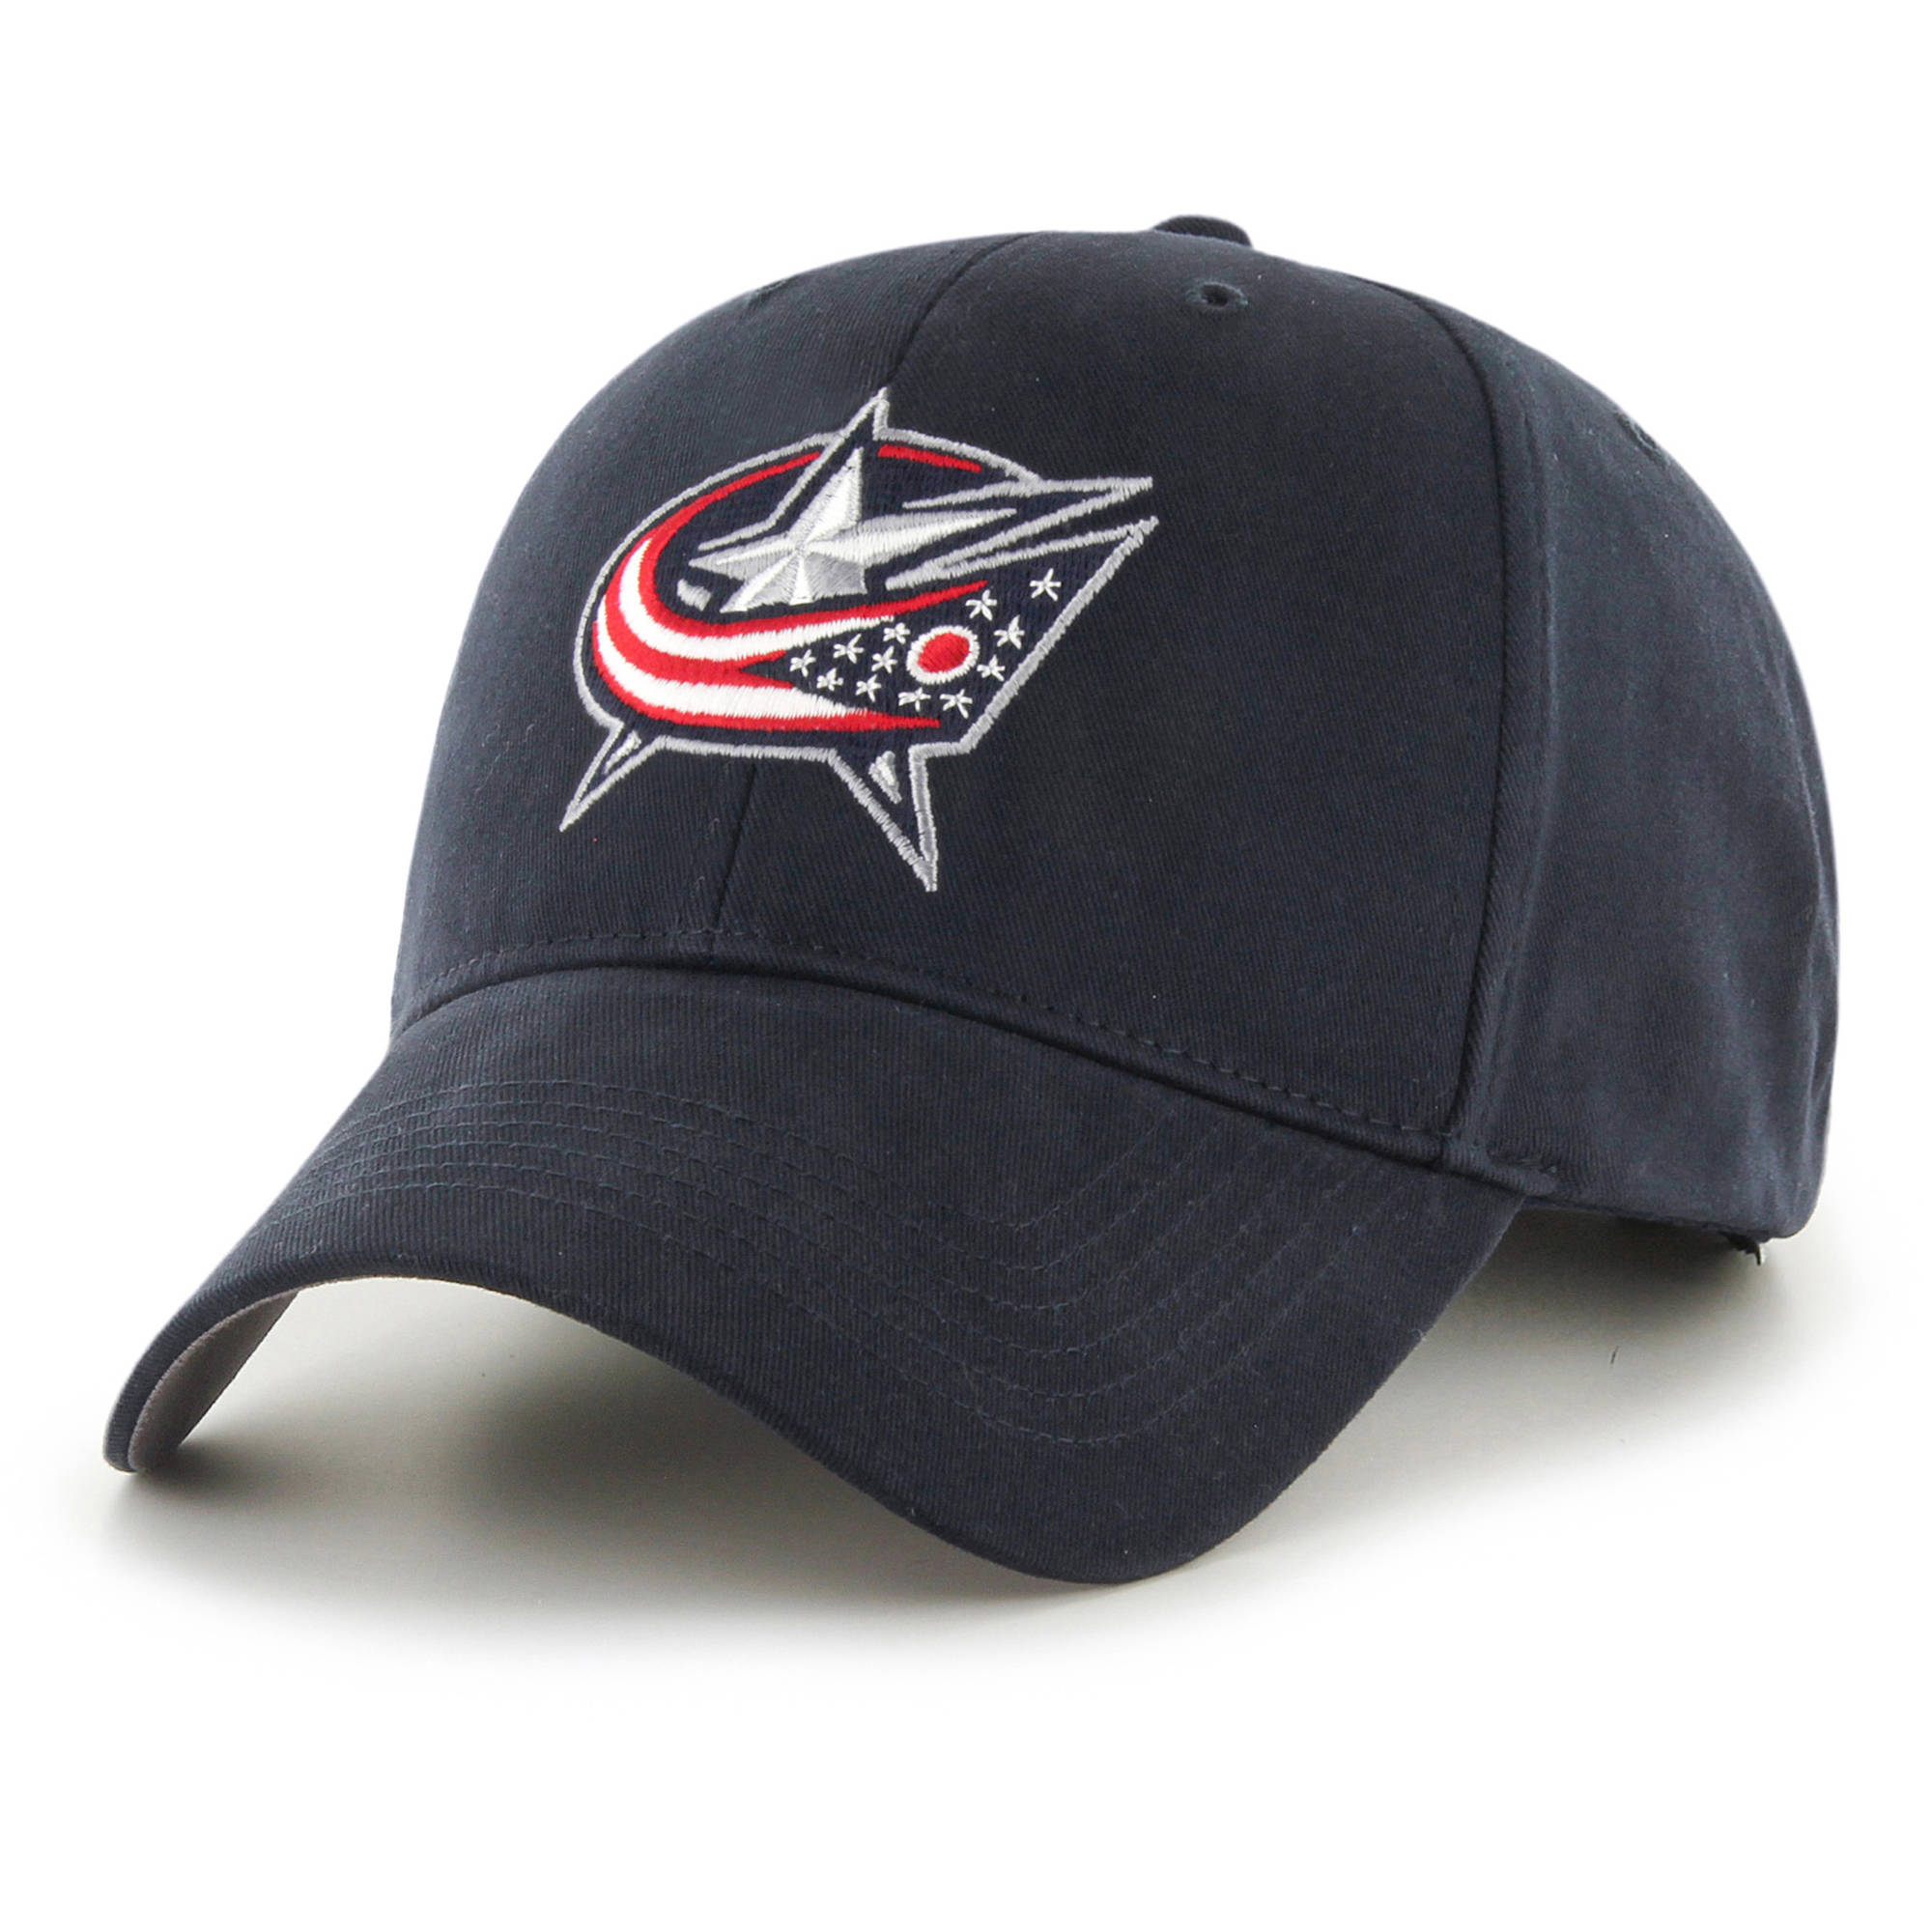 NHL Columbus Blue Jackets Basic Cap